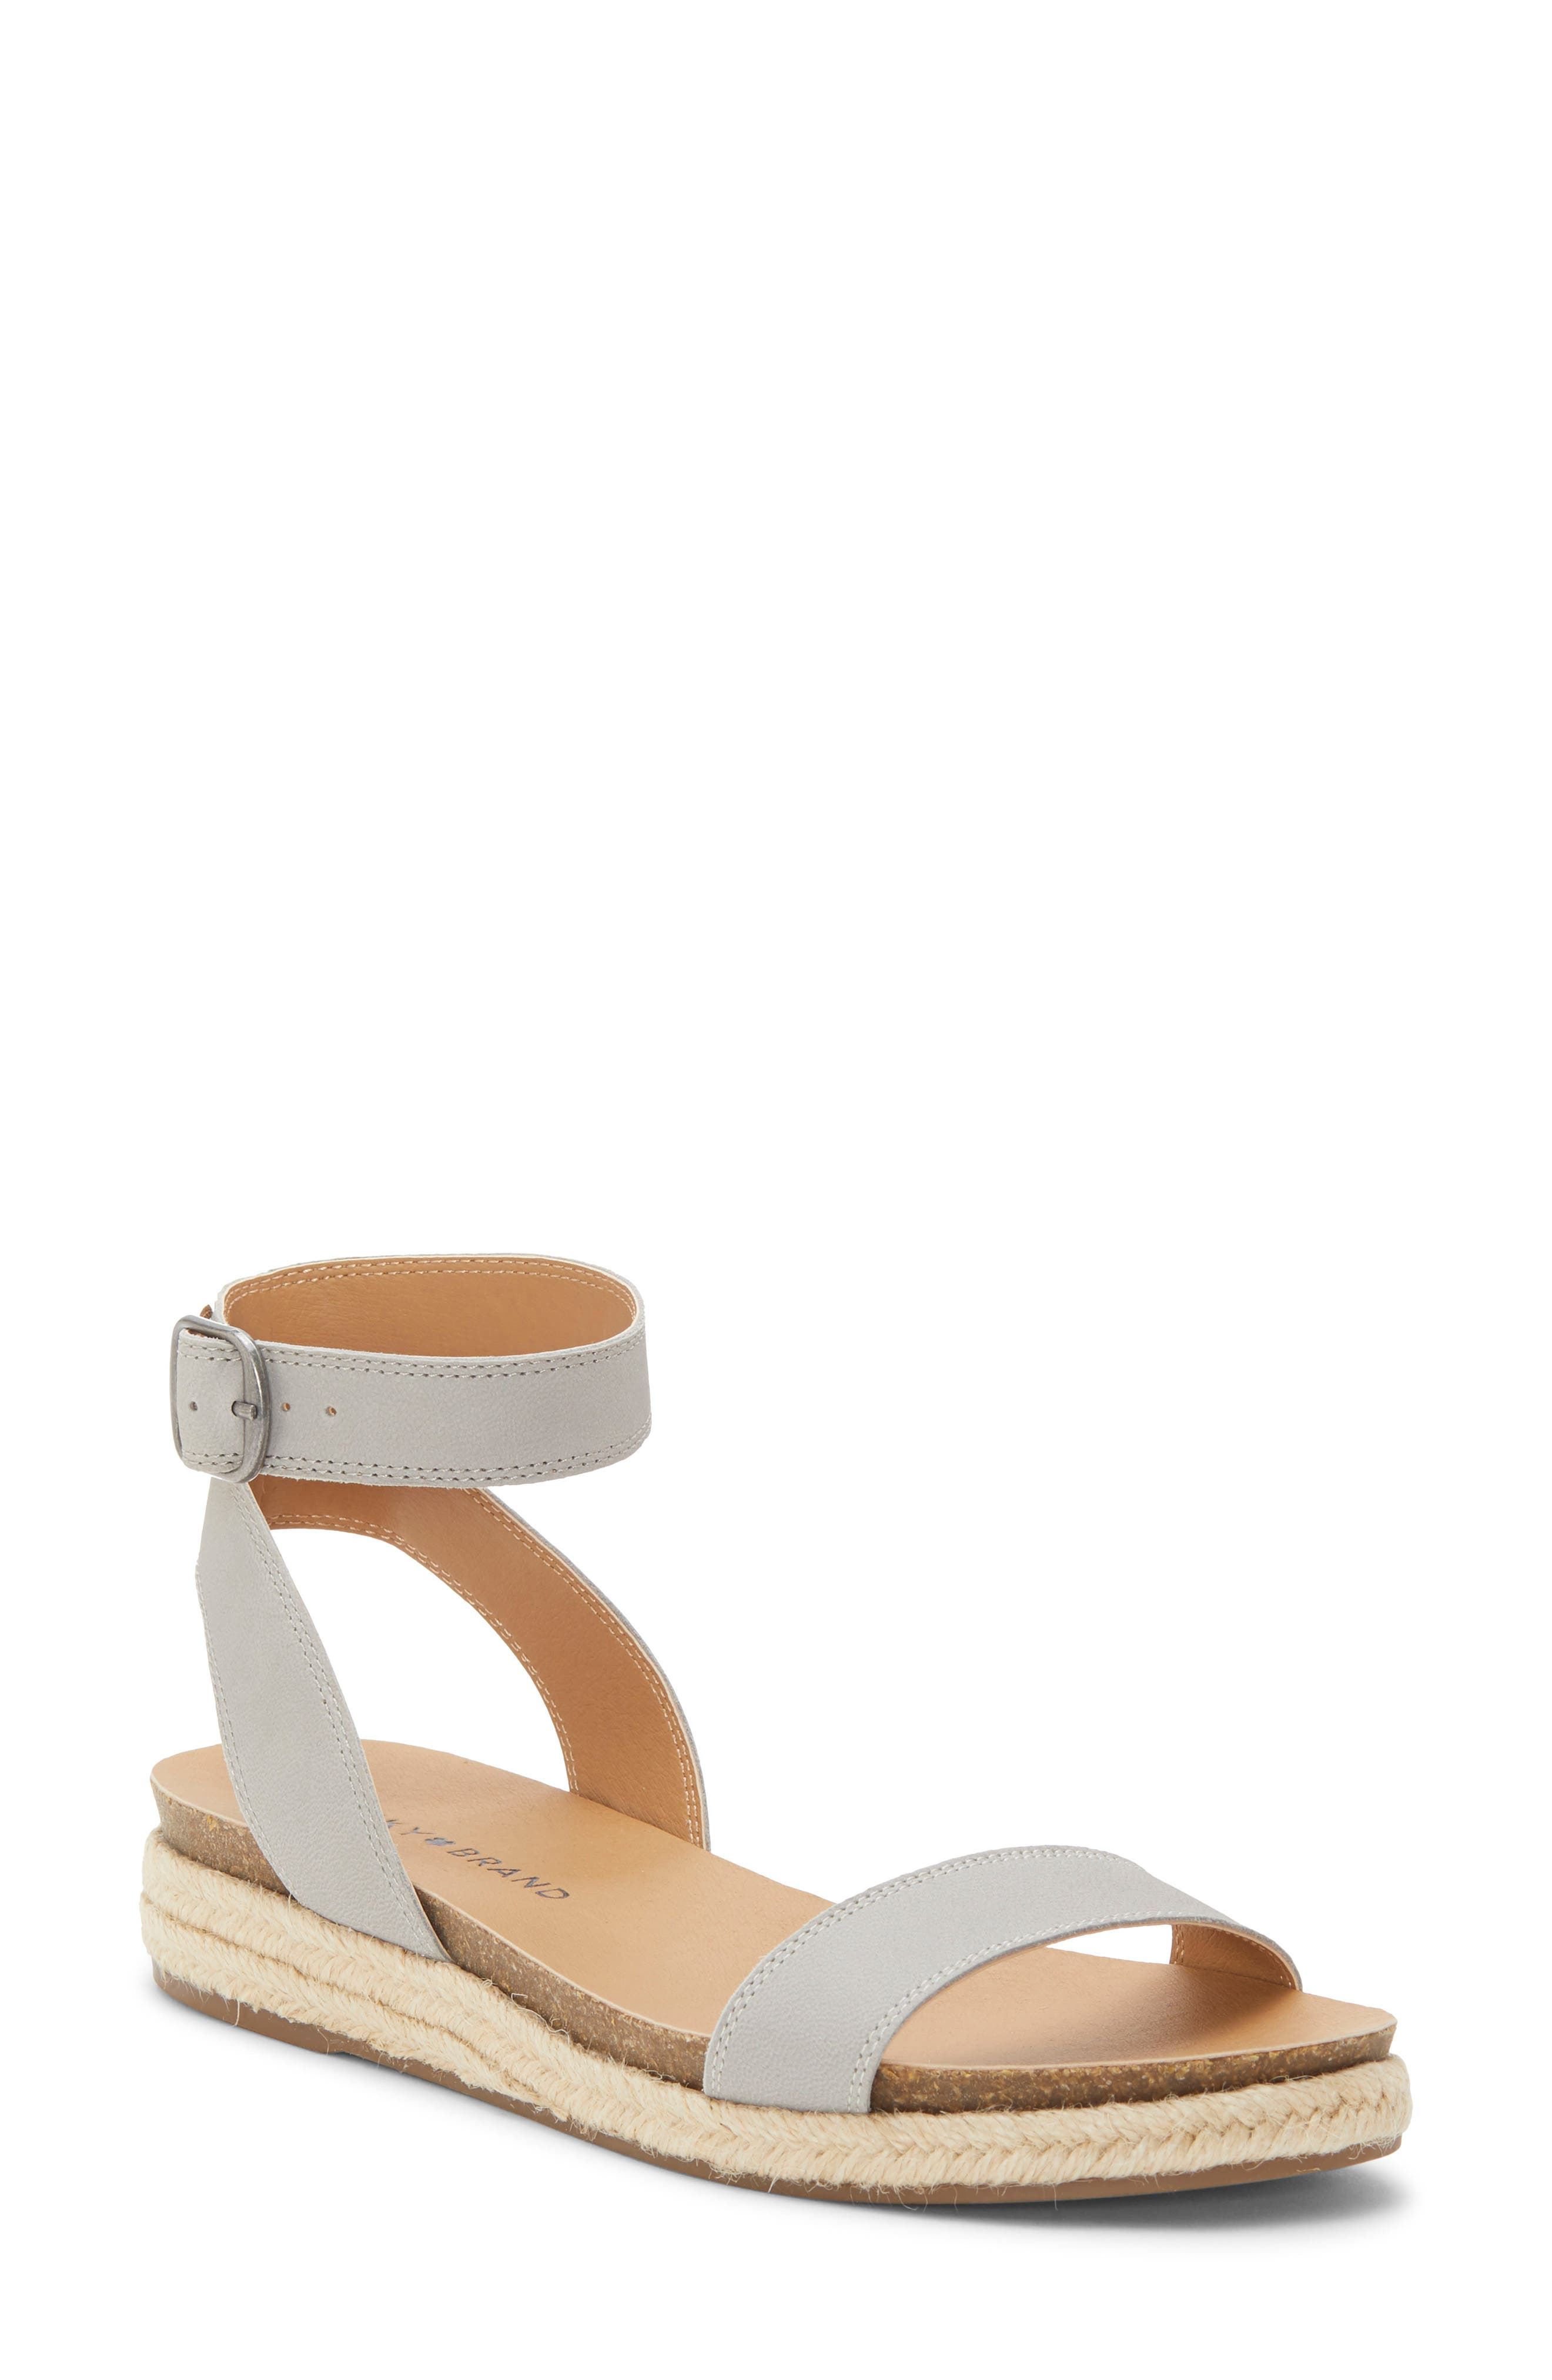 LUCKY BRAND Garston Espadrille Sandal, Main, color, CHINCHILLA LEATHER